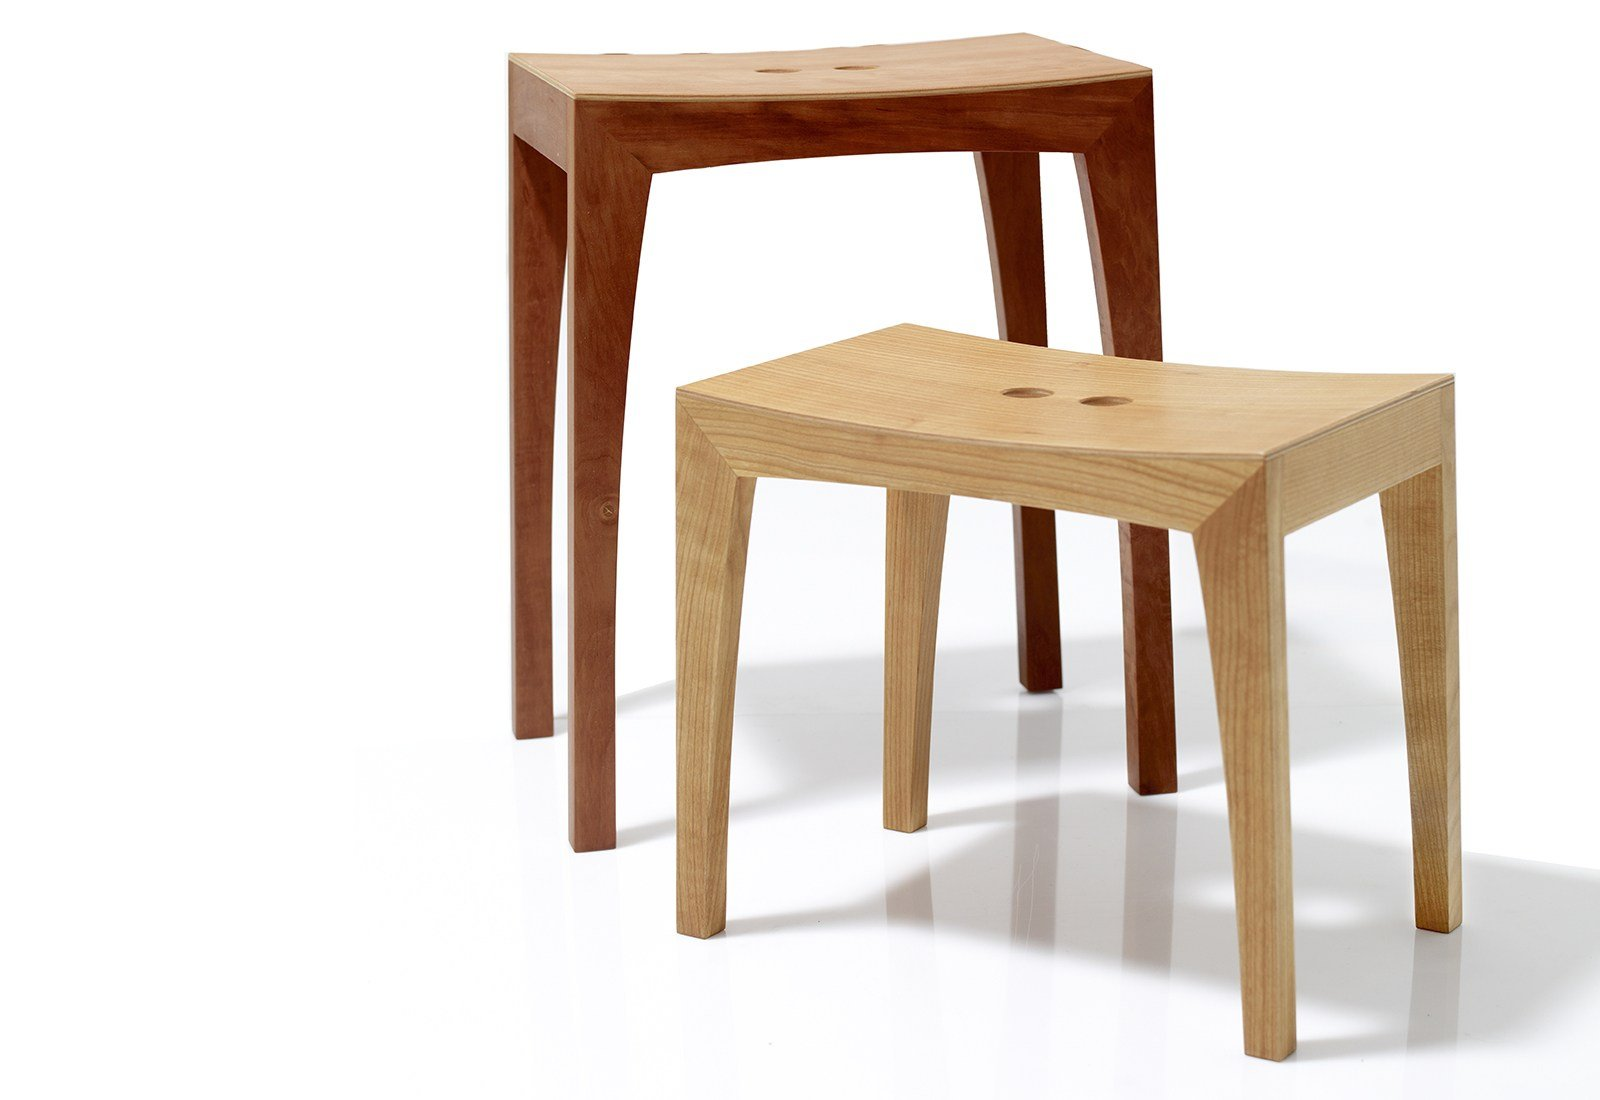 Otto1 hocker aus holz by sixay furniture